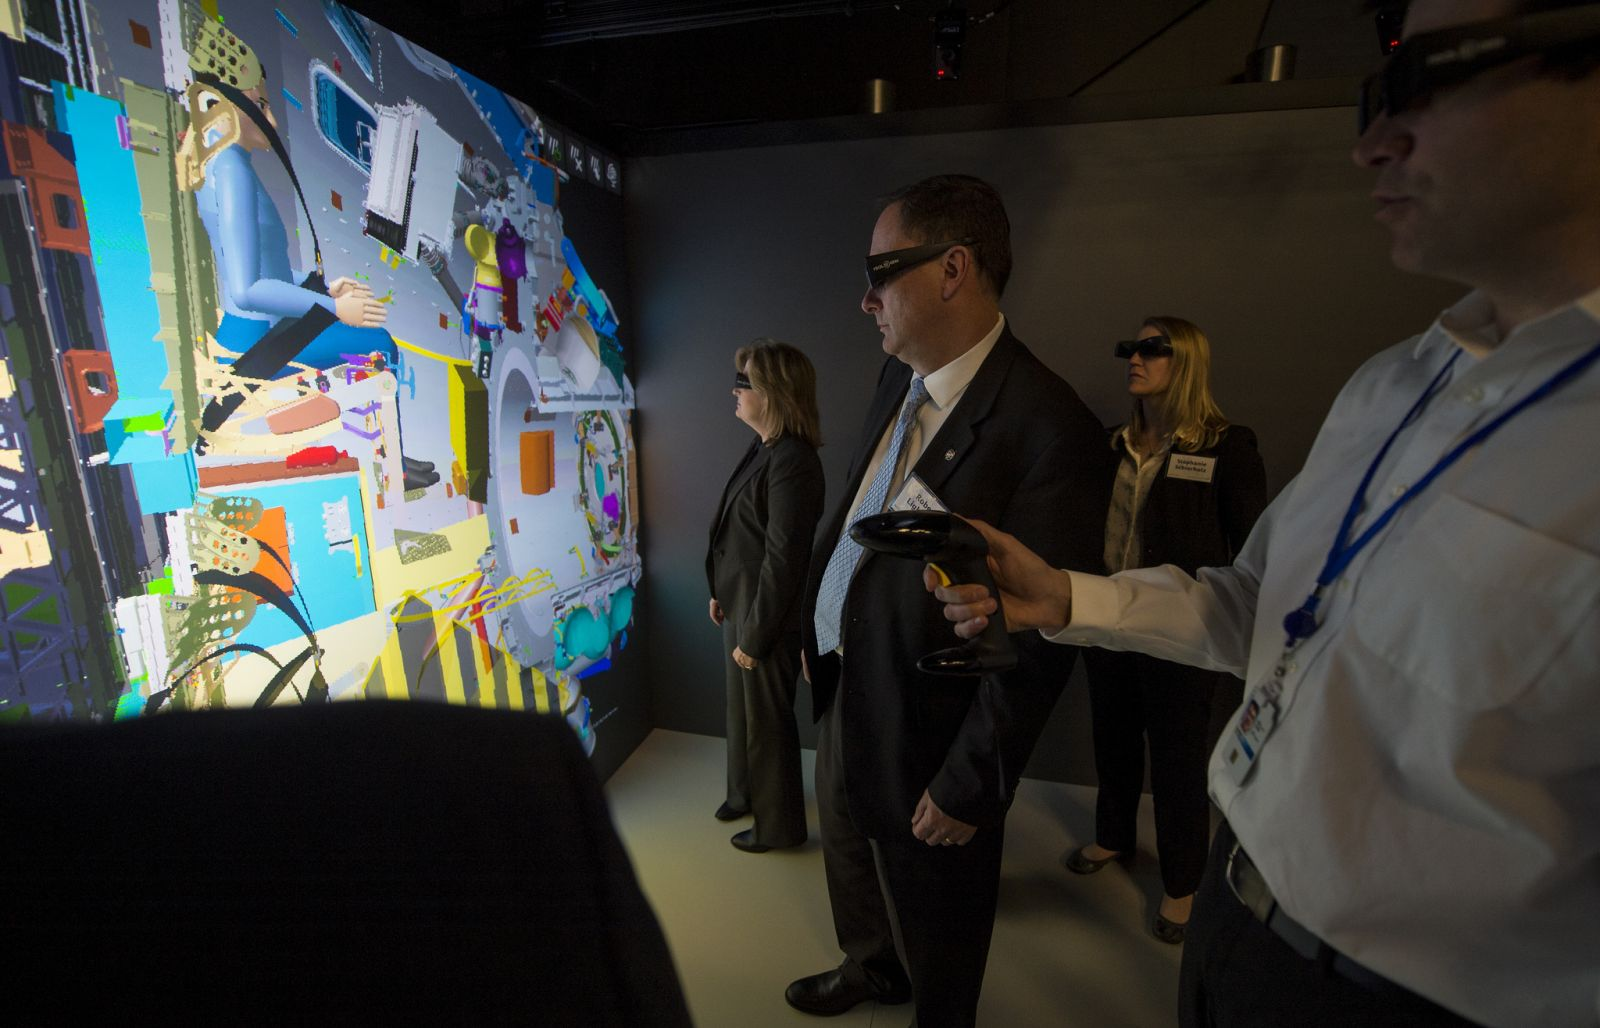 Lightfoot visits Lockheed's immersive laboratory